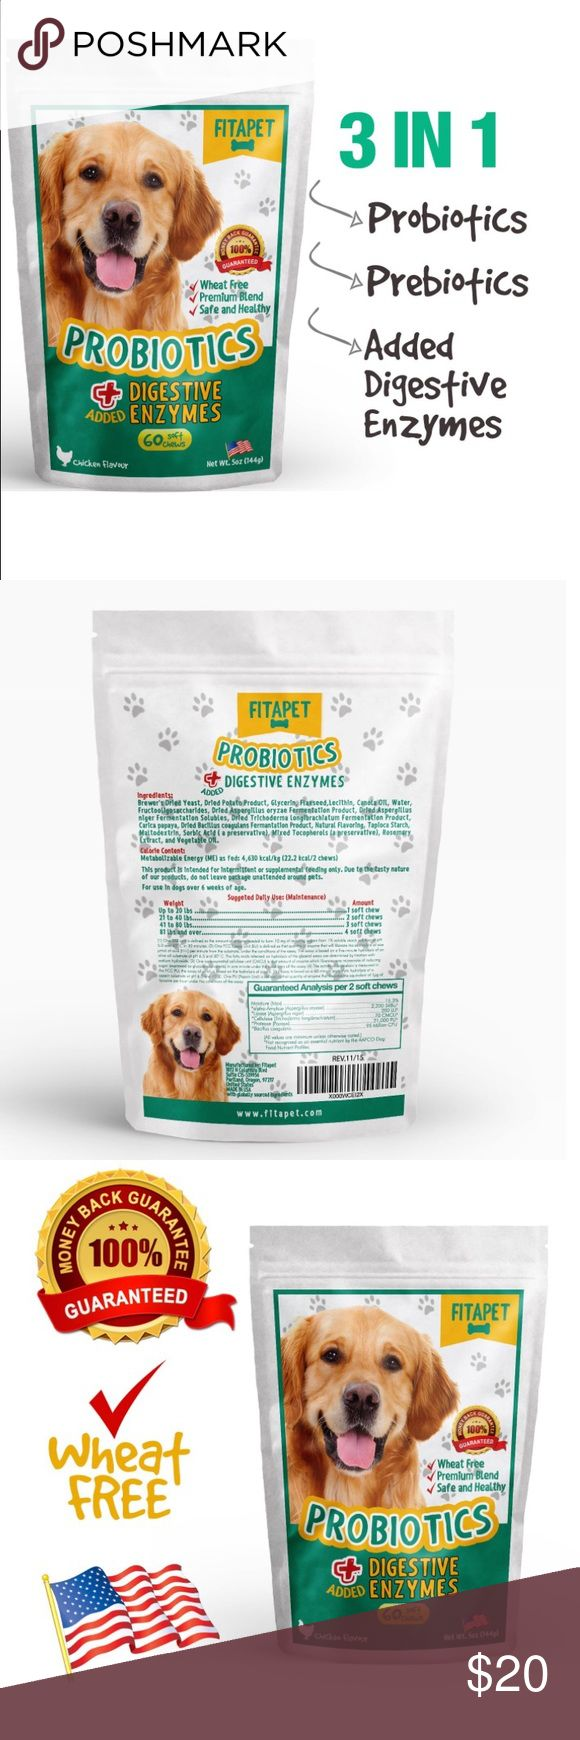 🐶Pets - Dog Probiotic Treats Helpful when dealing with food sensitivity, change of diet, allergies, anxiety, bad breath, diarrhea, travel or kenneling; Suitable for small to large breed and puppies over 6 weeks. No refrigeration, low calorie moist chewable treat. e-sealable pouch. WHEAT FREE! PROBIOTICS are bacteria naturally present in the digestive tract PREBIOTICS are used as a source of food for probiotics to grow, multiply and survive in the gut; DIGESTIVE ENZYMES aids the breakdown of…